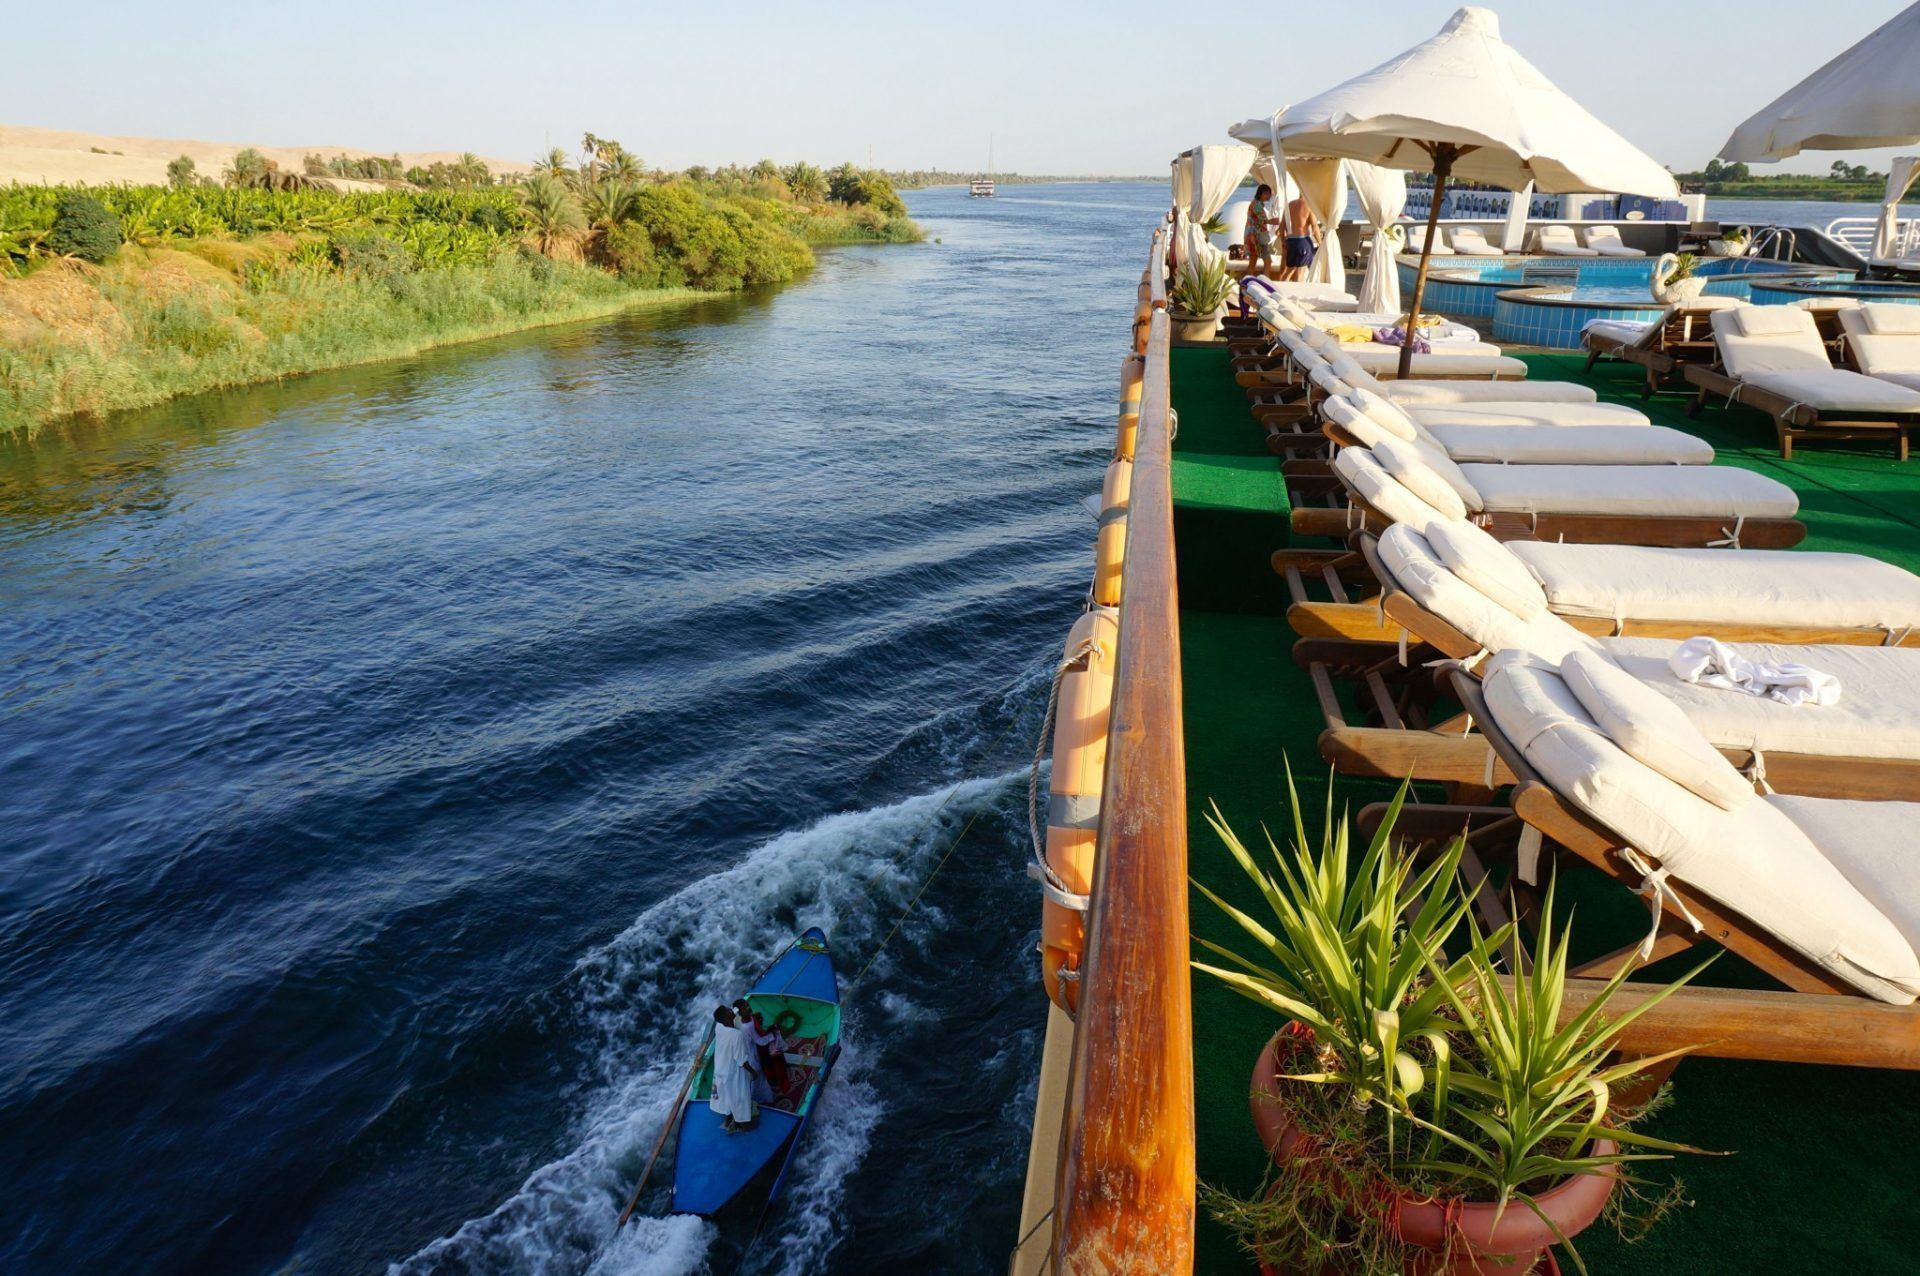 Cruise itinerary reviews - M S Amarco Ii Nile Cruise Top Deck And Nile Shore Line While Cursing Down